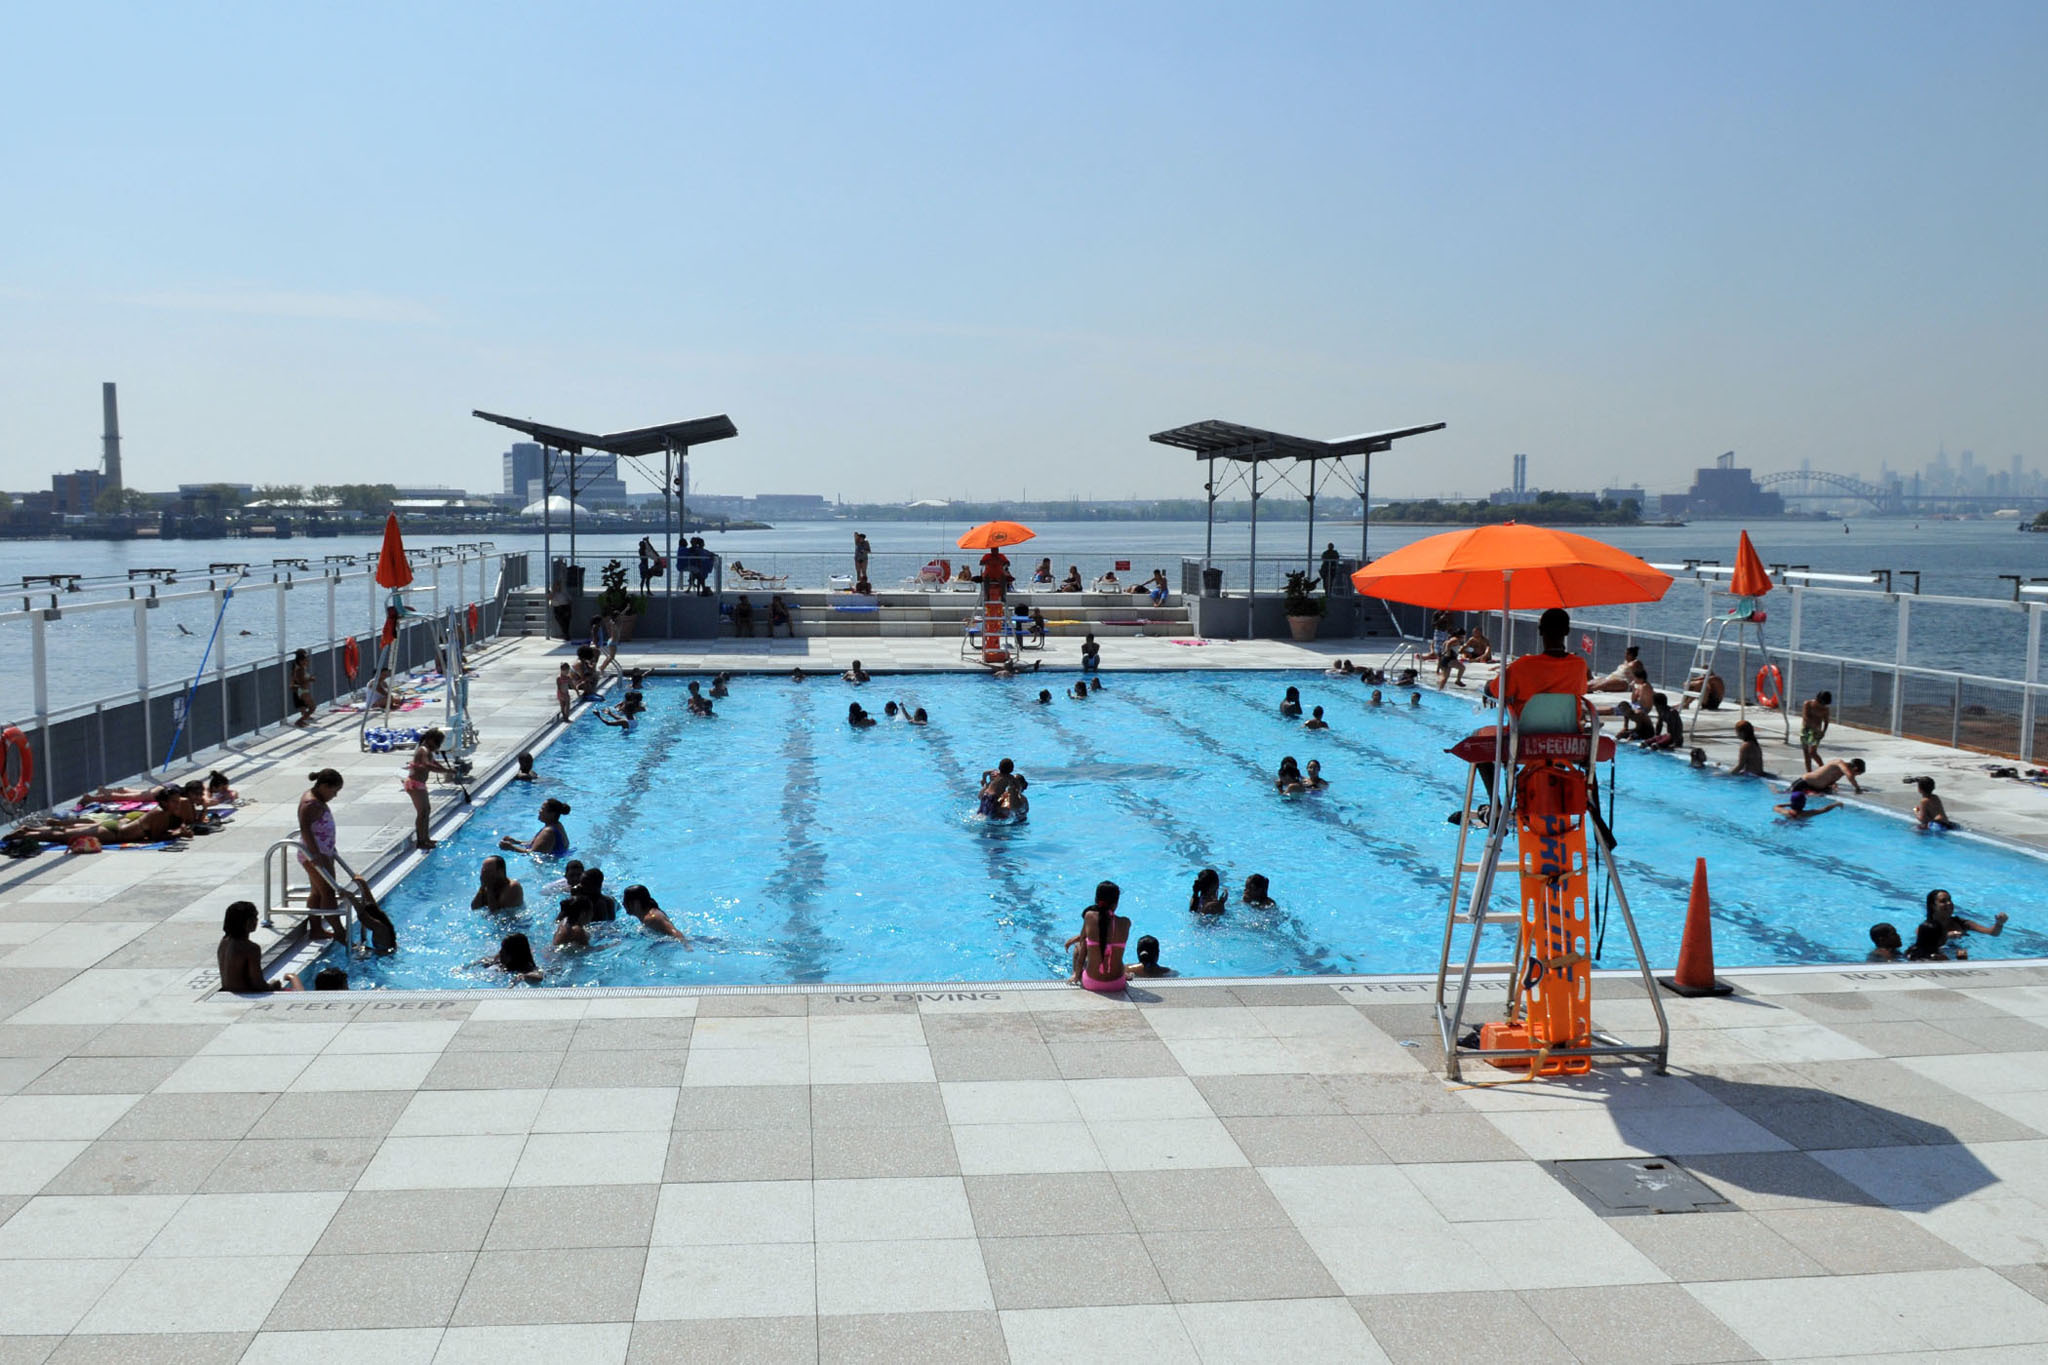 Public swimming pools in NYC